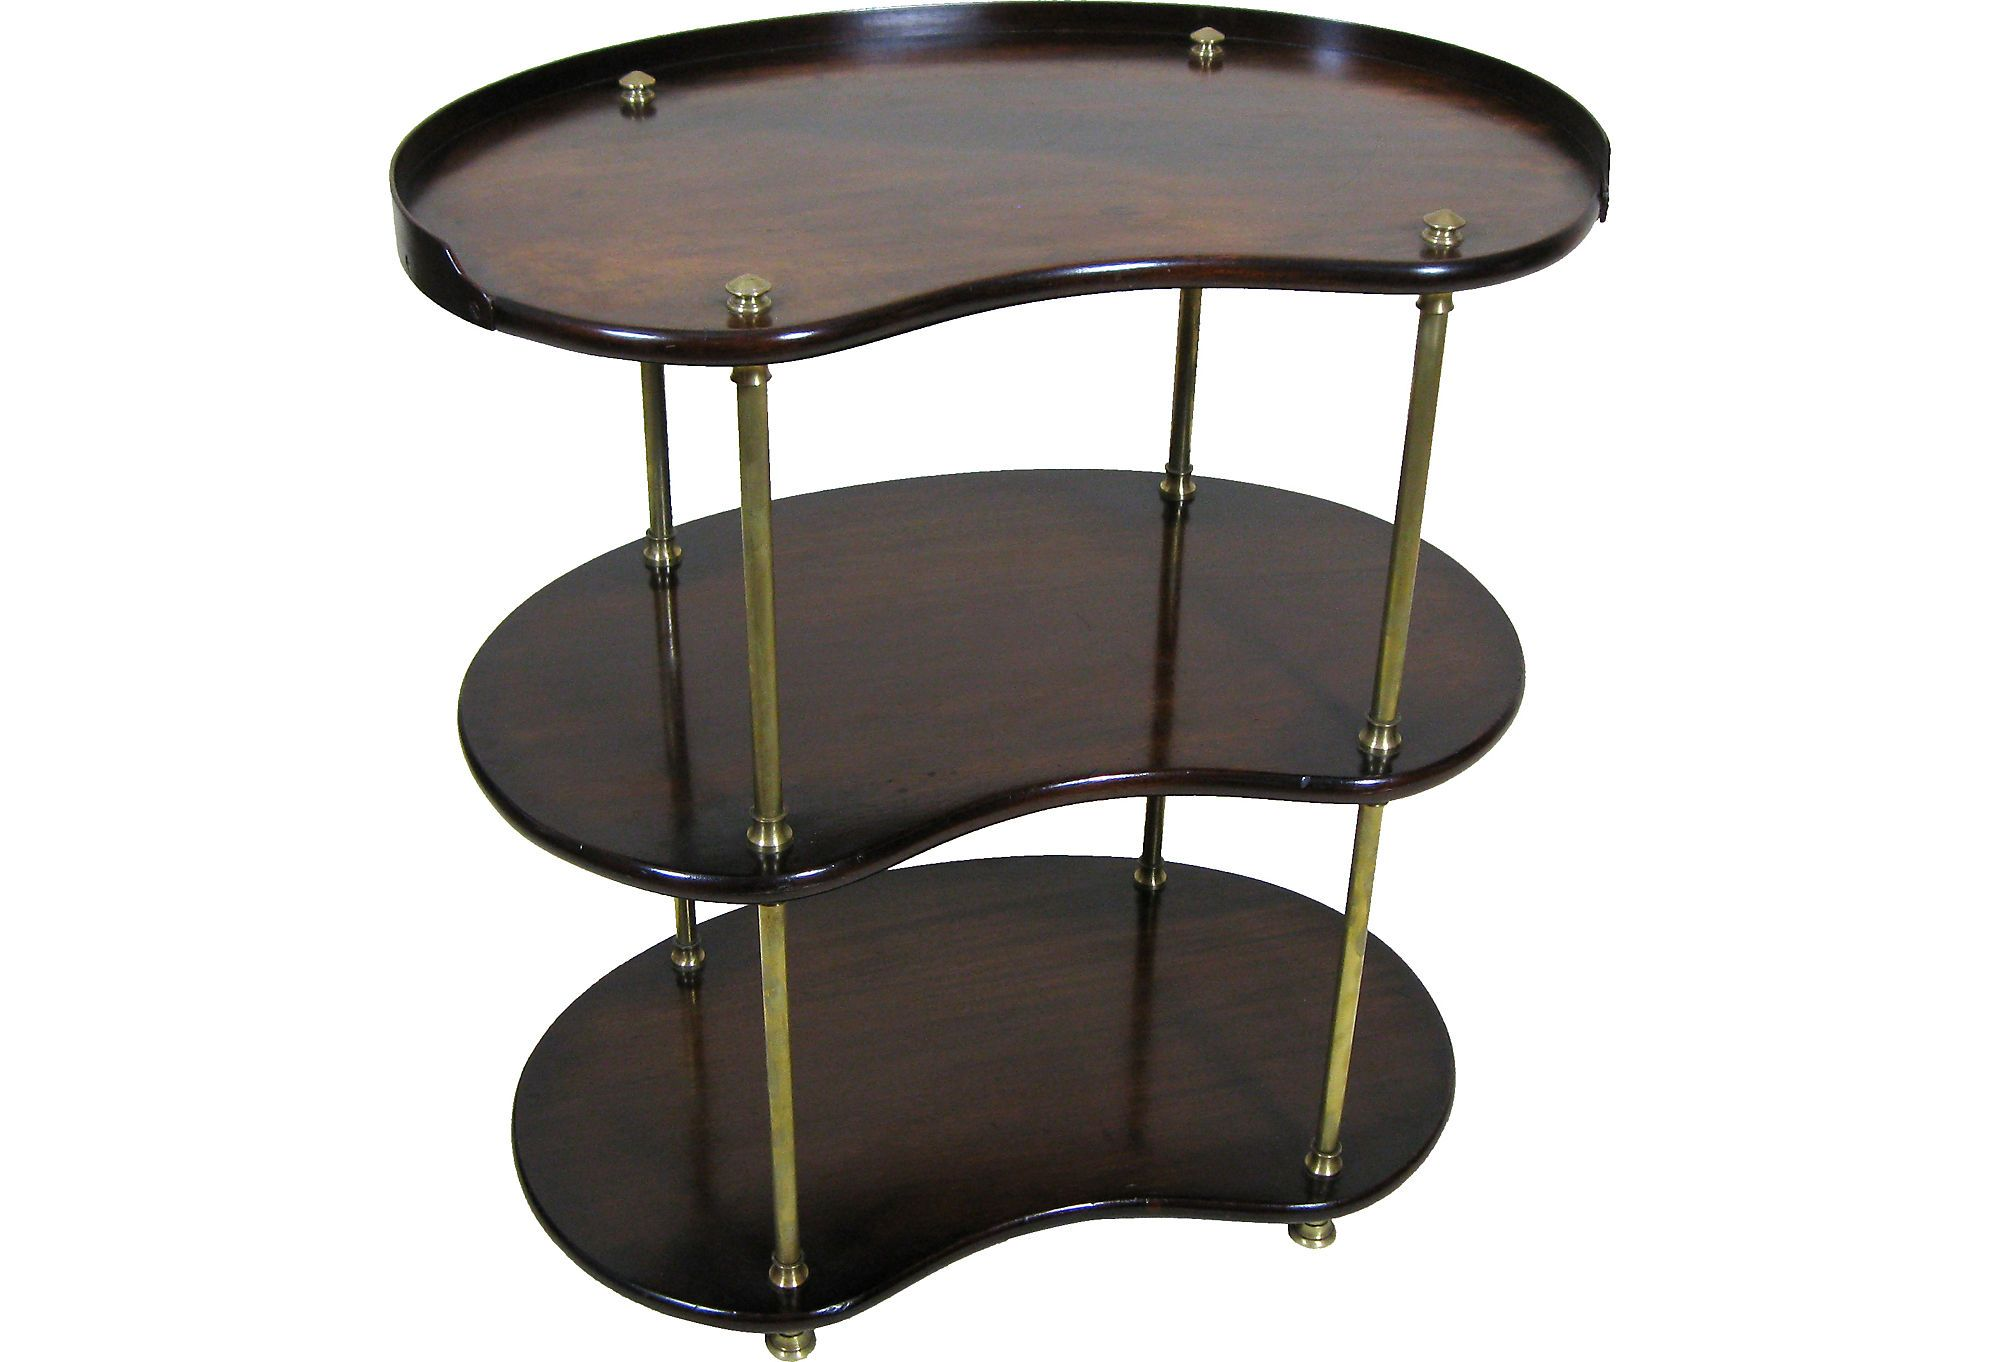 Regency Mahogany 3 Tier Serving Table with brass uprights and